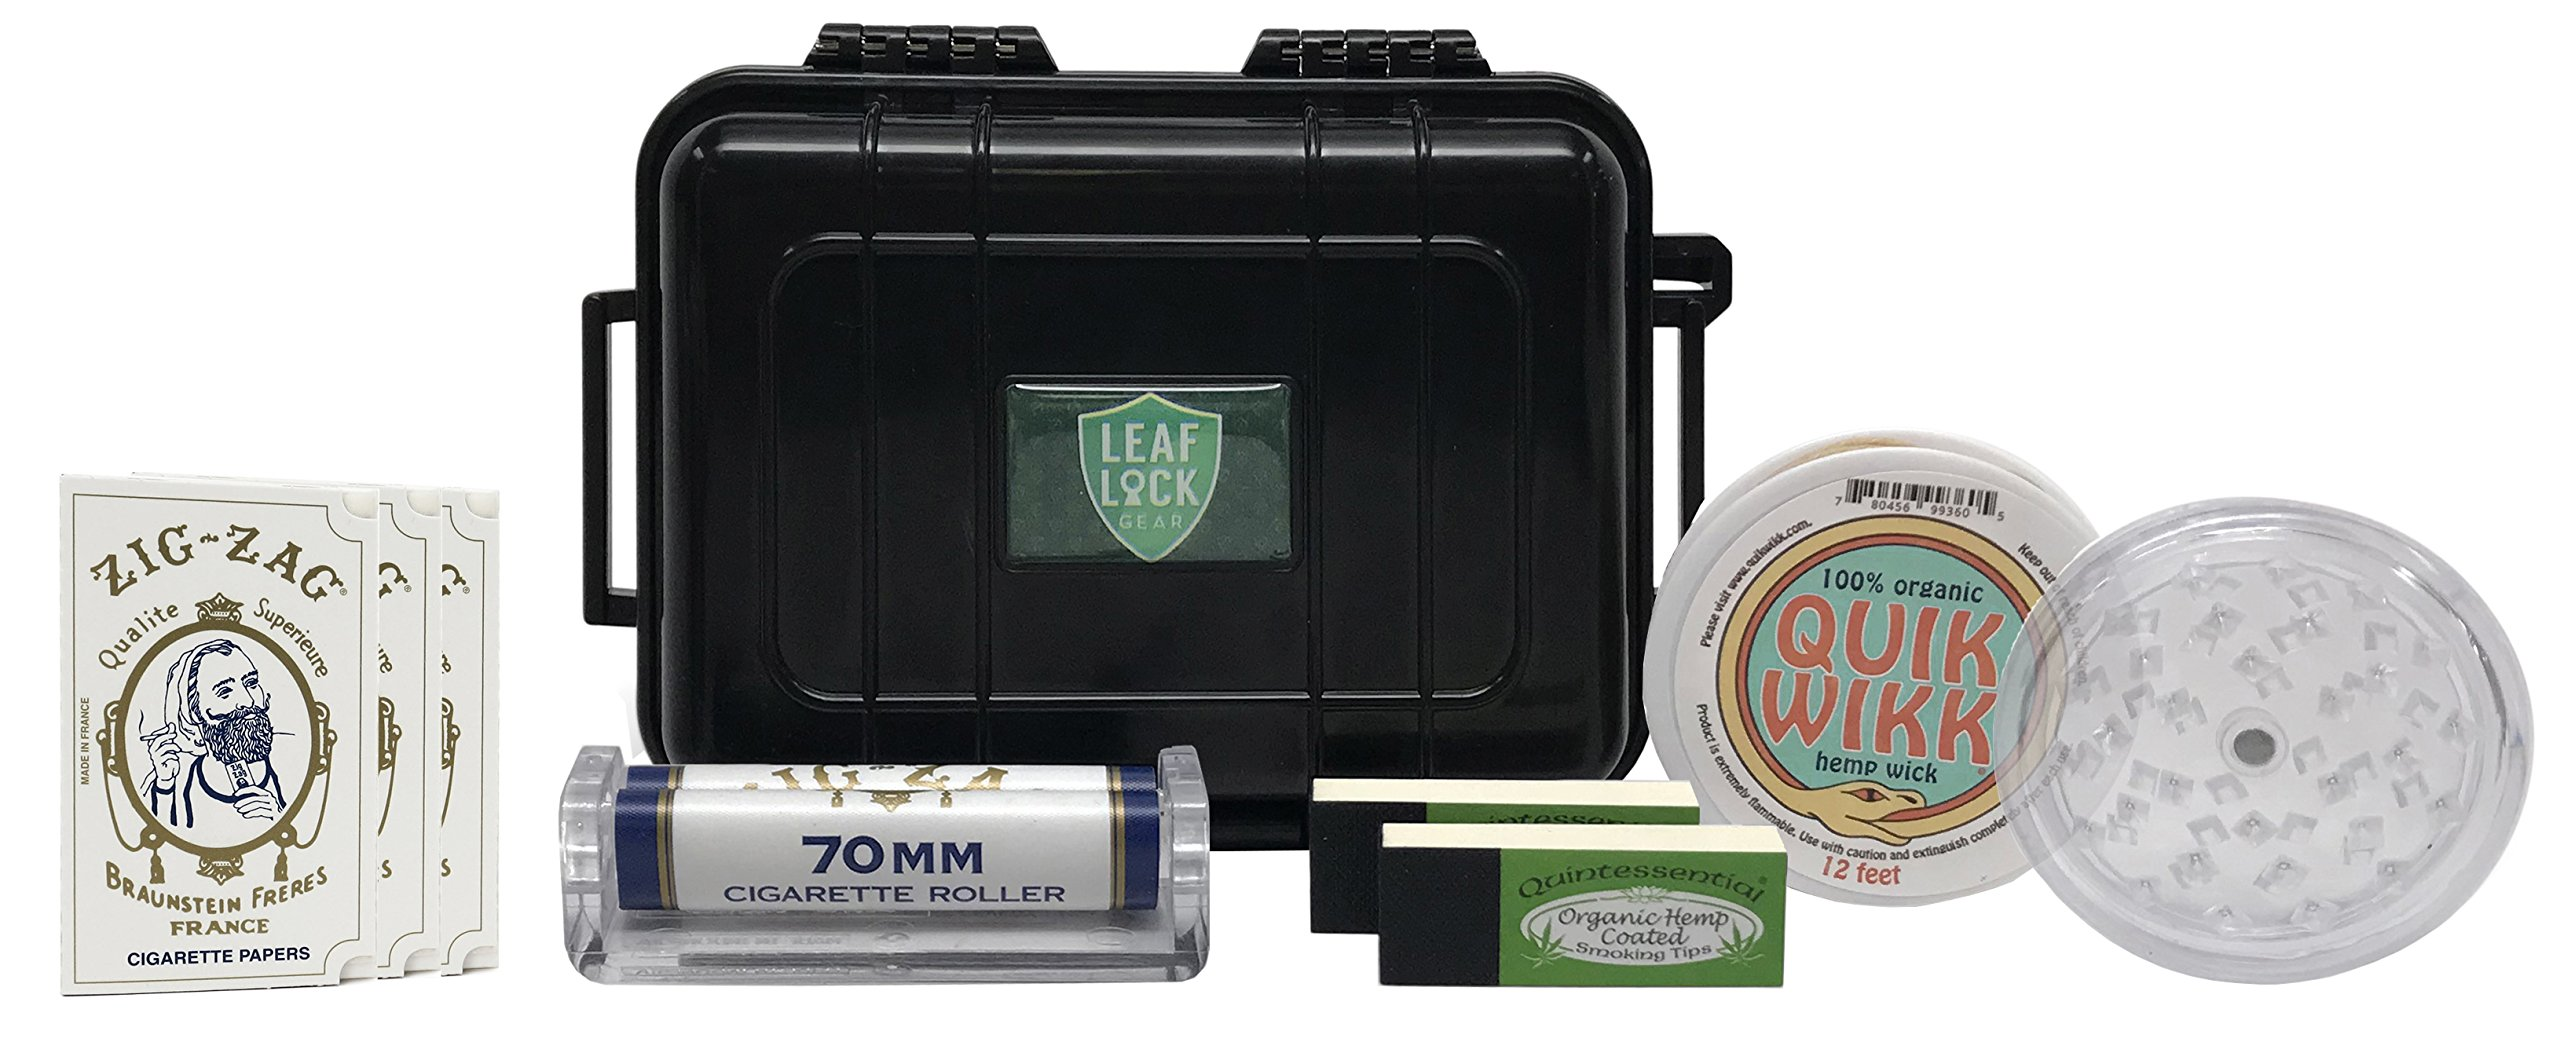 Zig Zag White Rolling Papers (3 Packs), Zig Zag 70mm Cigarette Roller, Quintessential Tips (2 Packs), Leaf Lock Gear Airtight Travel Case, and Acrylic Grinder - 8 Item Bundle